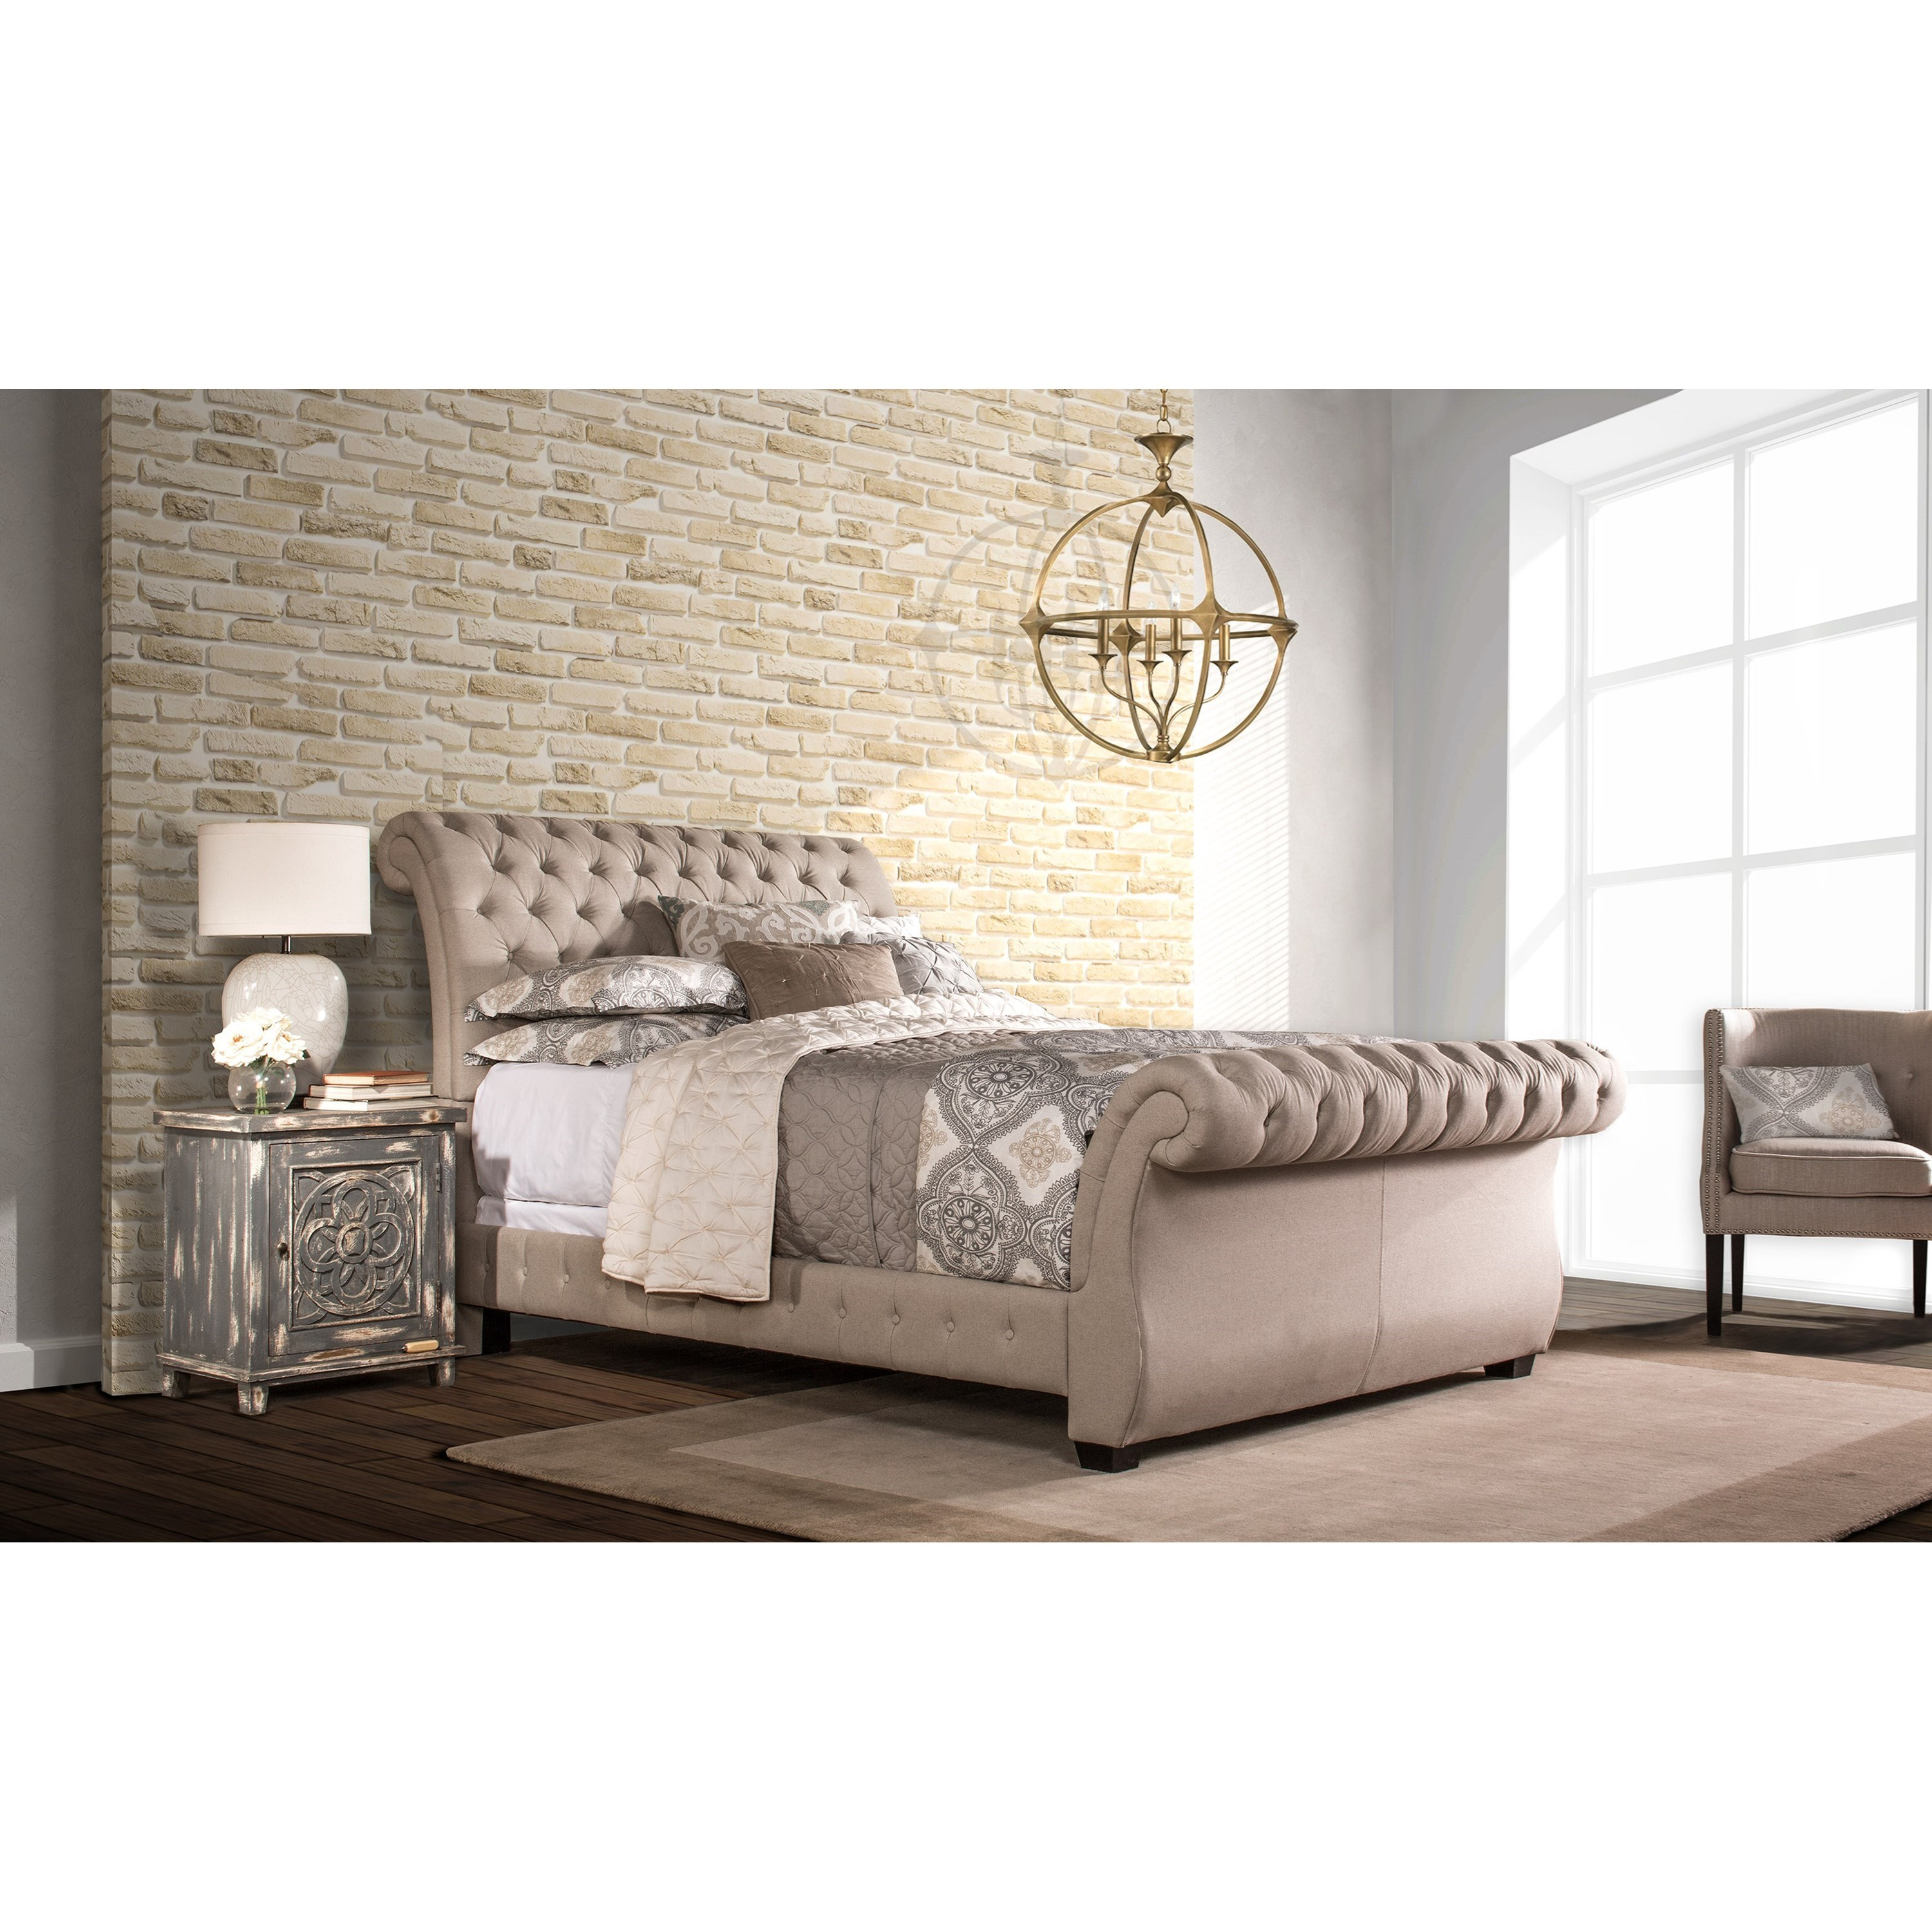 hillsdale upholstered beds queen bombay bed - item number: 1118bqrl TBKLOLB